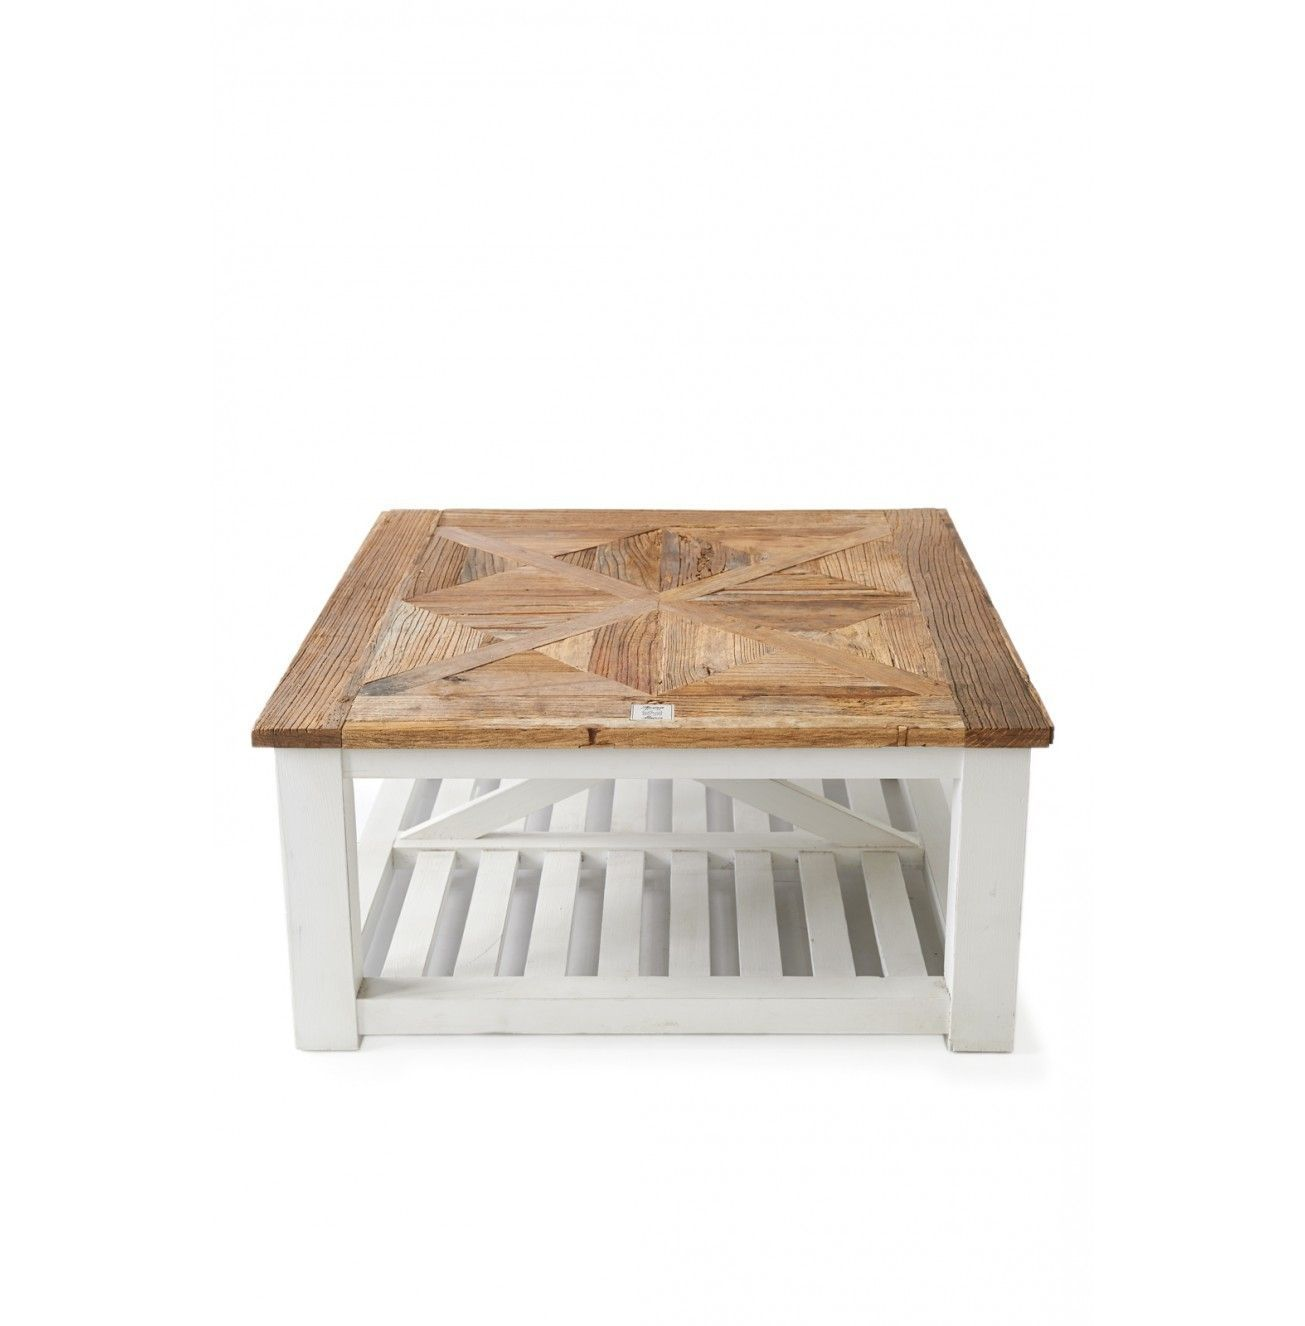 Château Chassigny Coffee Table 90 x 90 cm